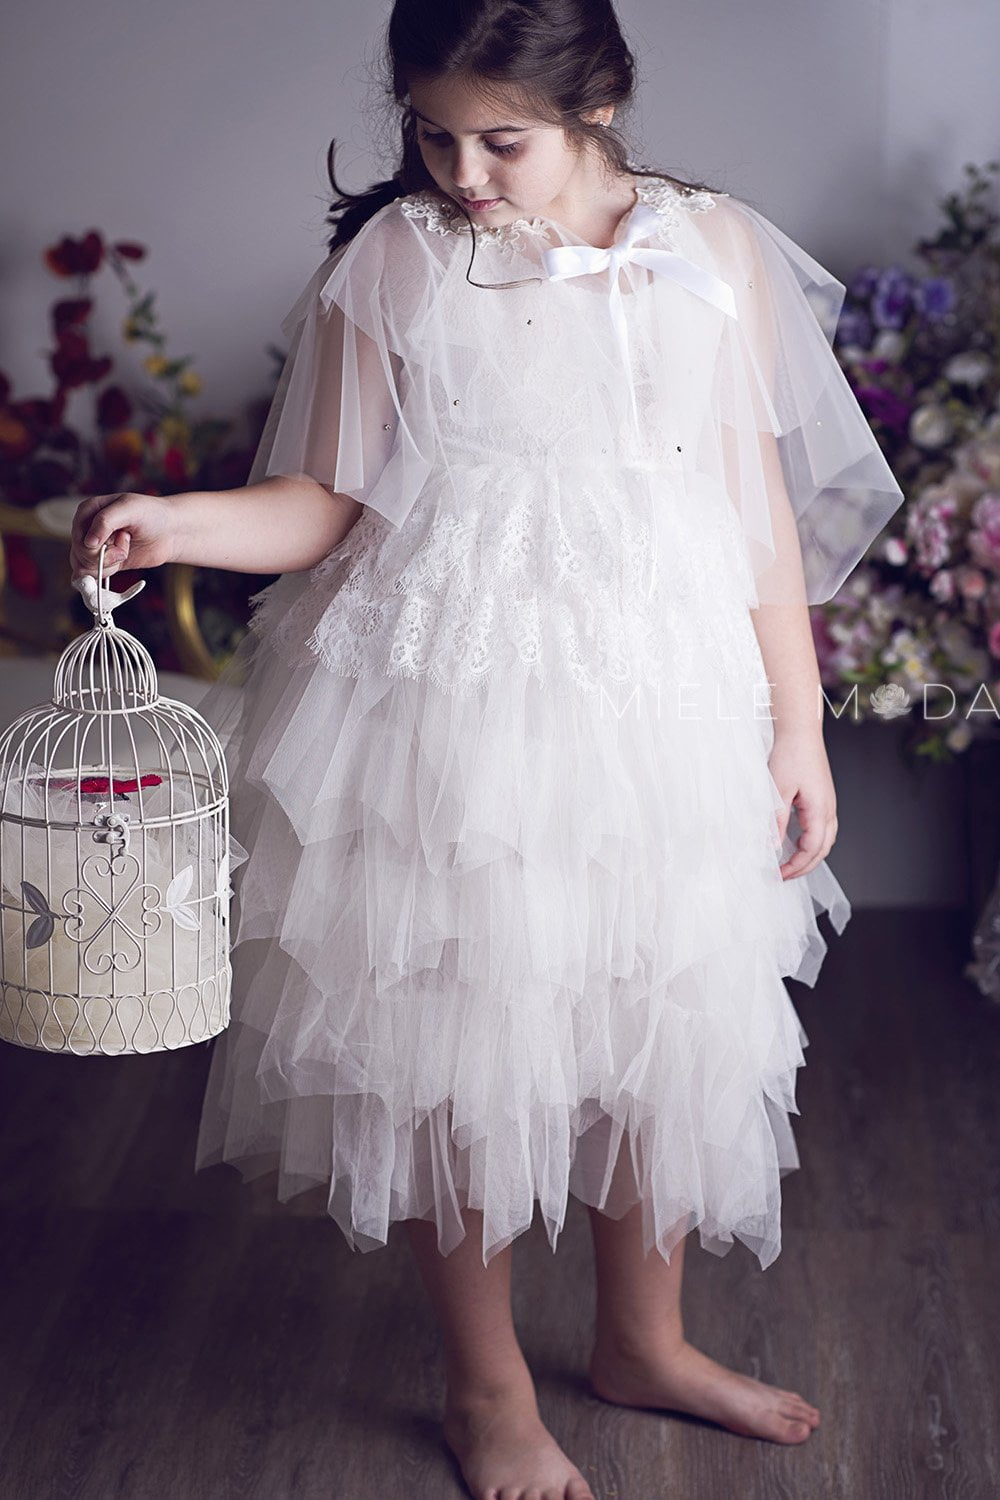 Pretty girl wearing Anna White Tulle Lace Girls Fashion Cape-by Miele Moda Boutique